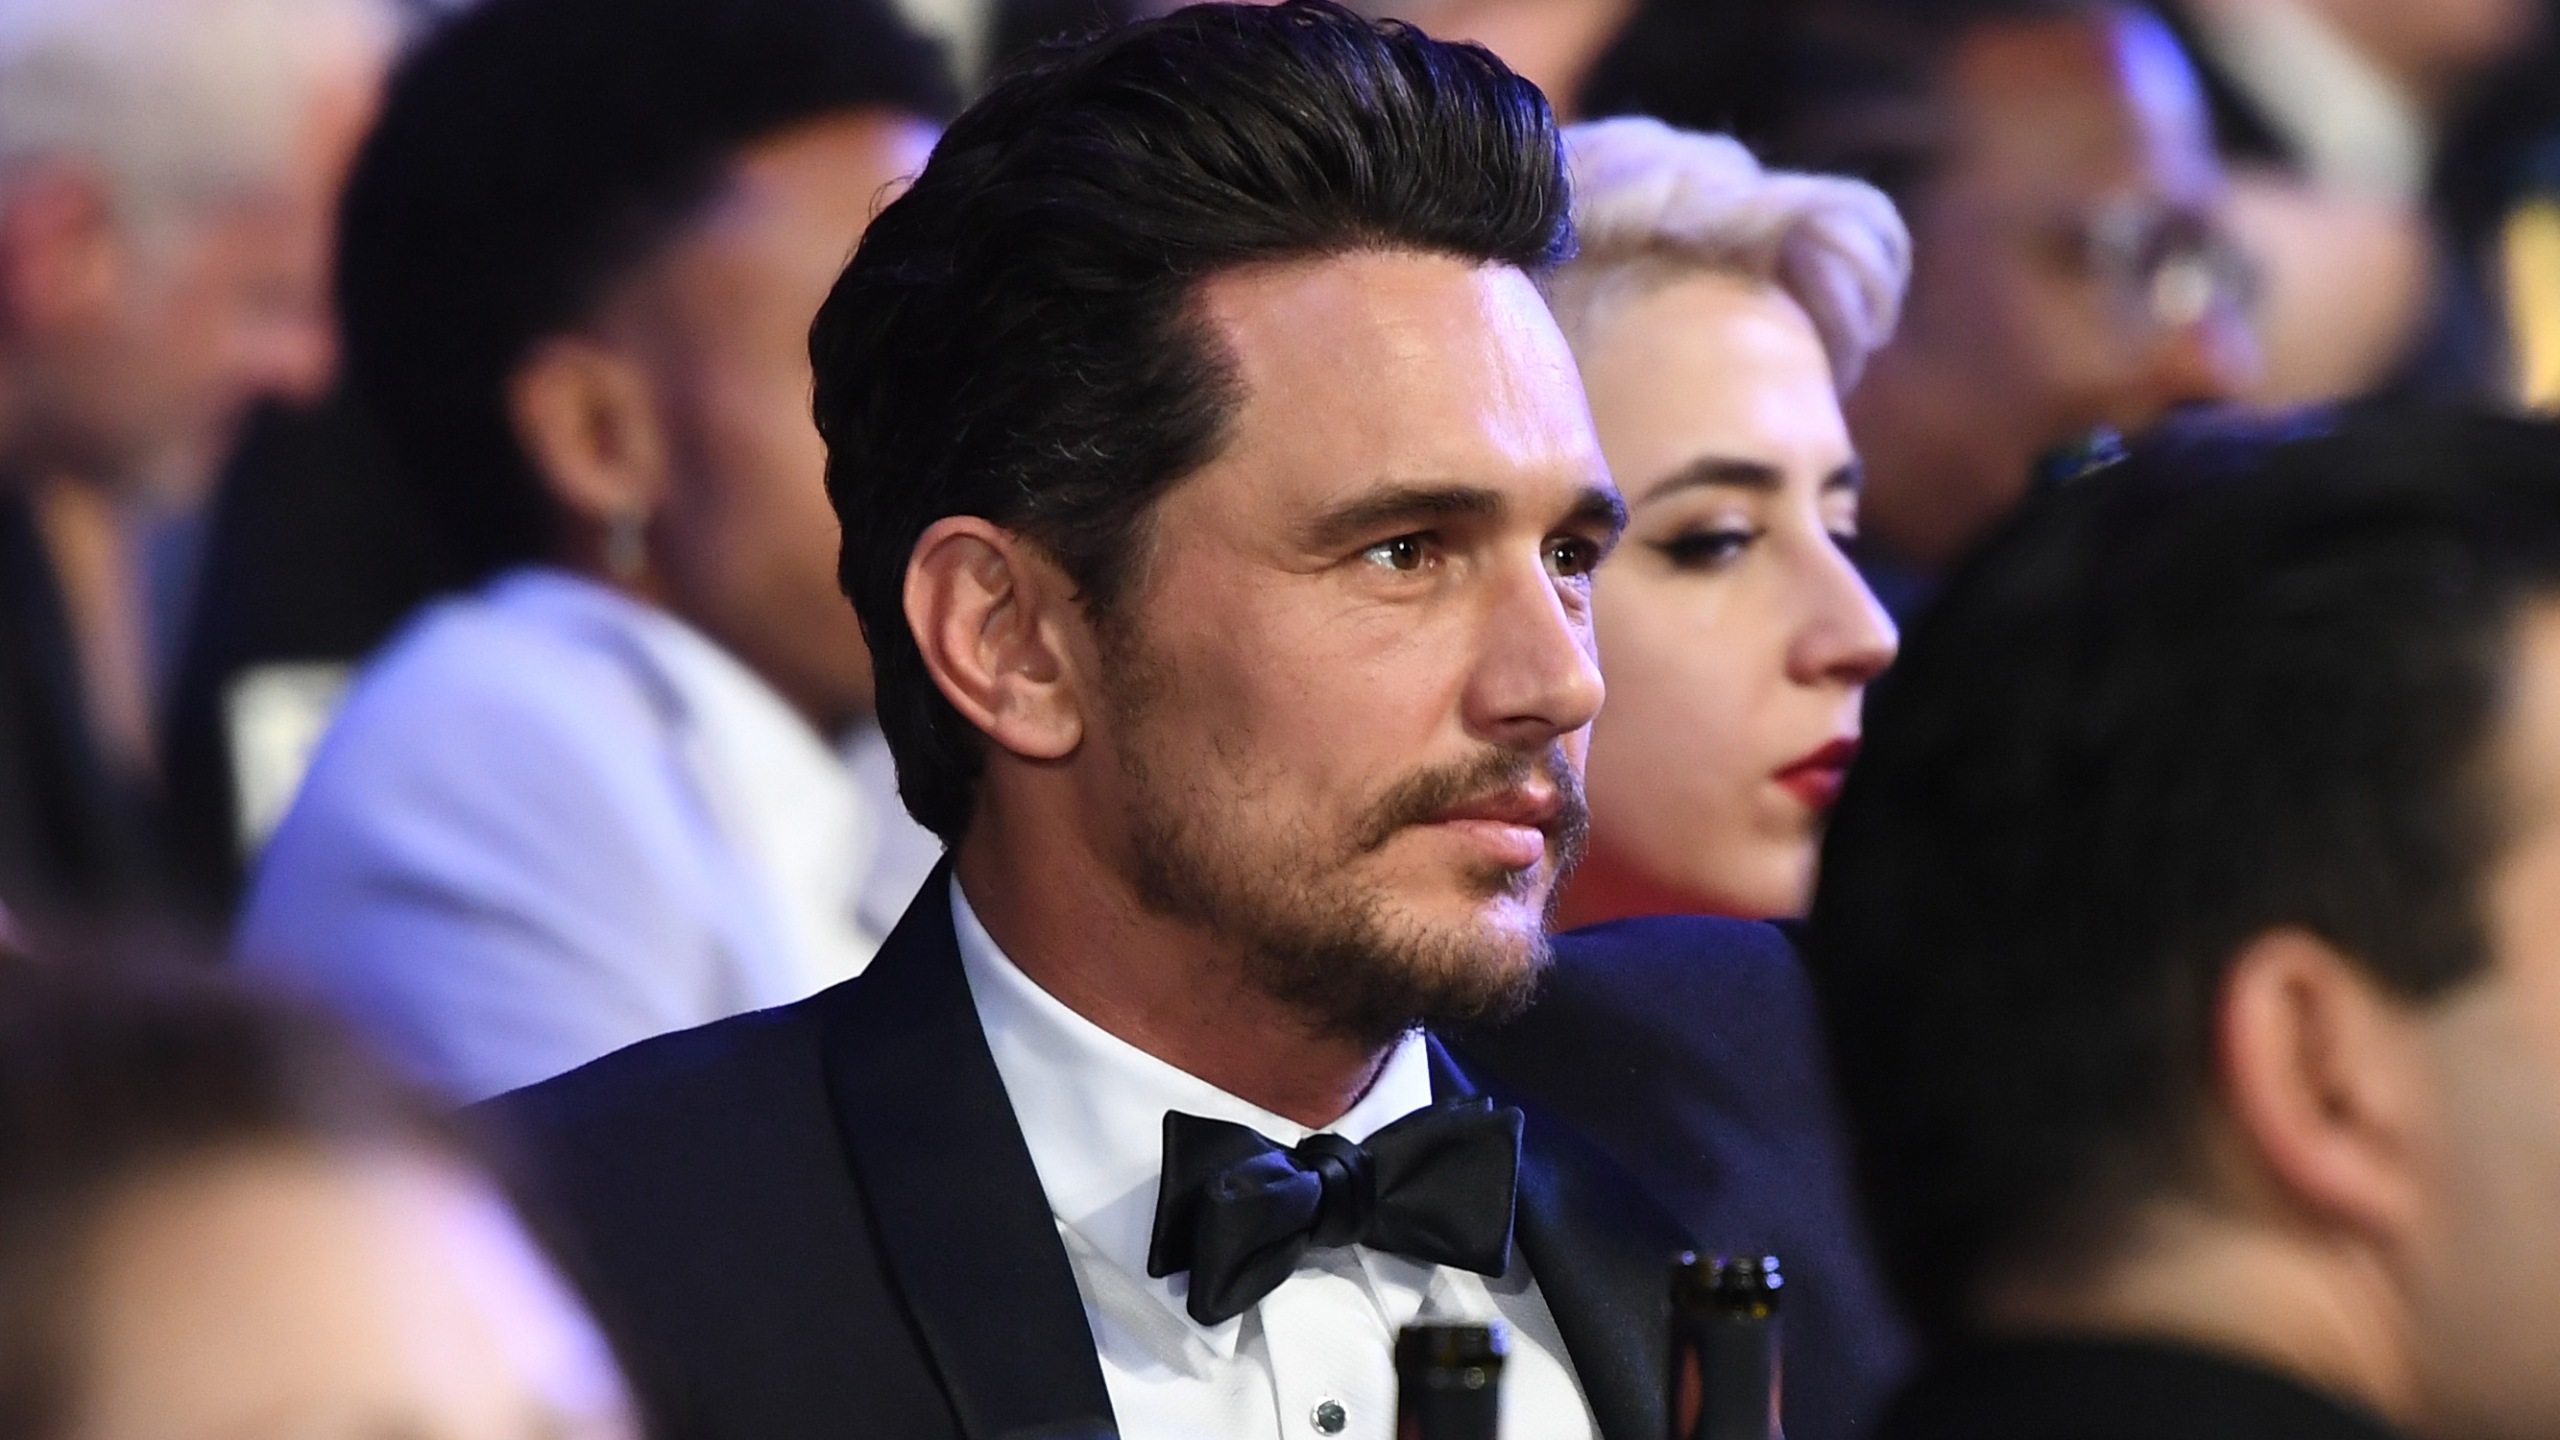 Actor James Franco attends the 24th-annual Screen Actors Guild Awards at The Shrine Auditorium in Los Angeles on Jan. 21, 2018. (Credit: Dimitrios Kambouris / Getty Images for Turner)